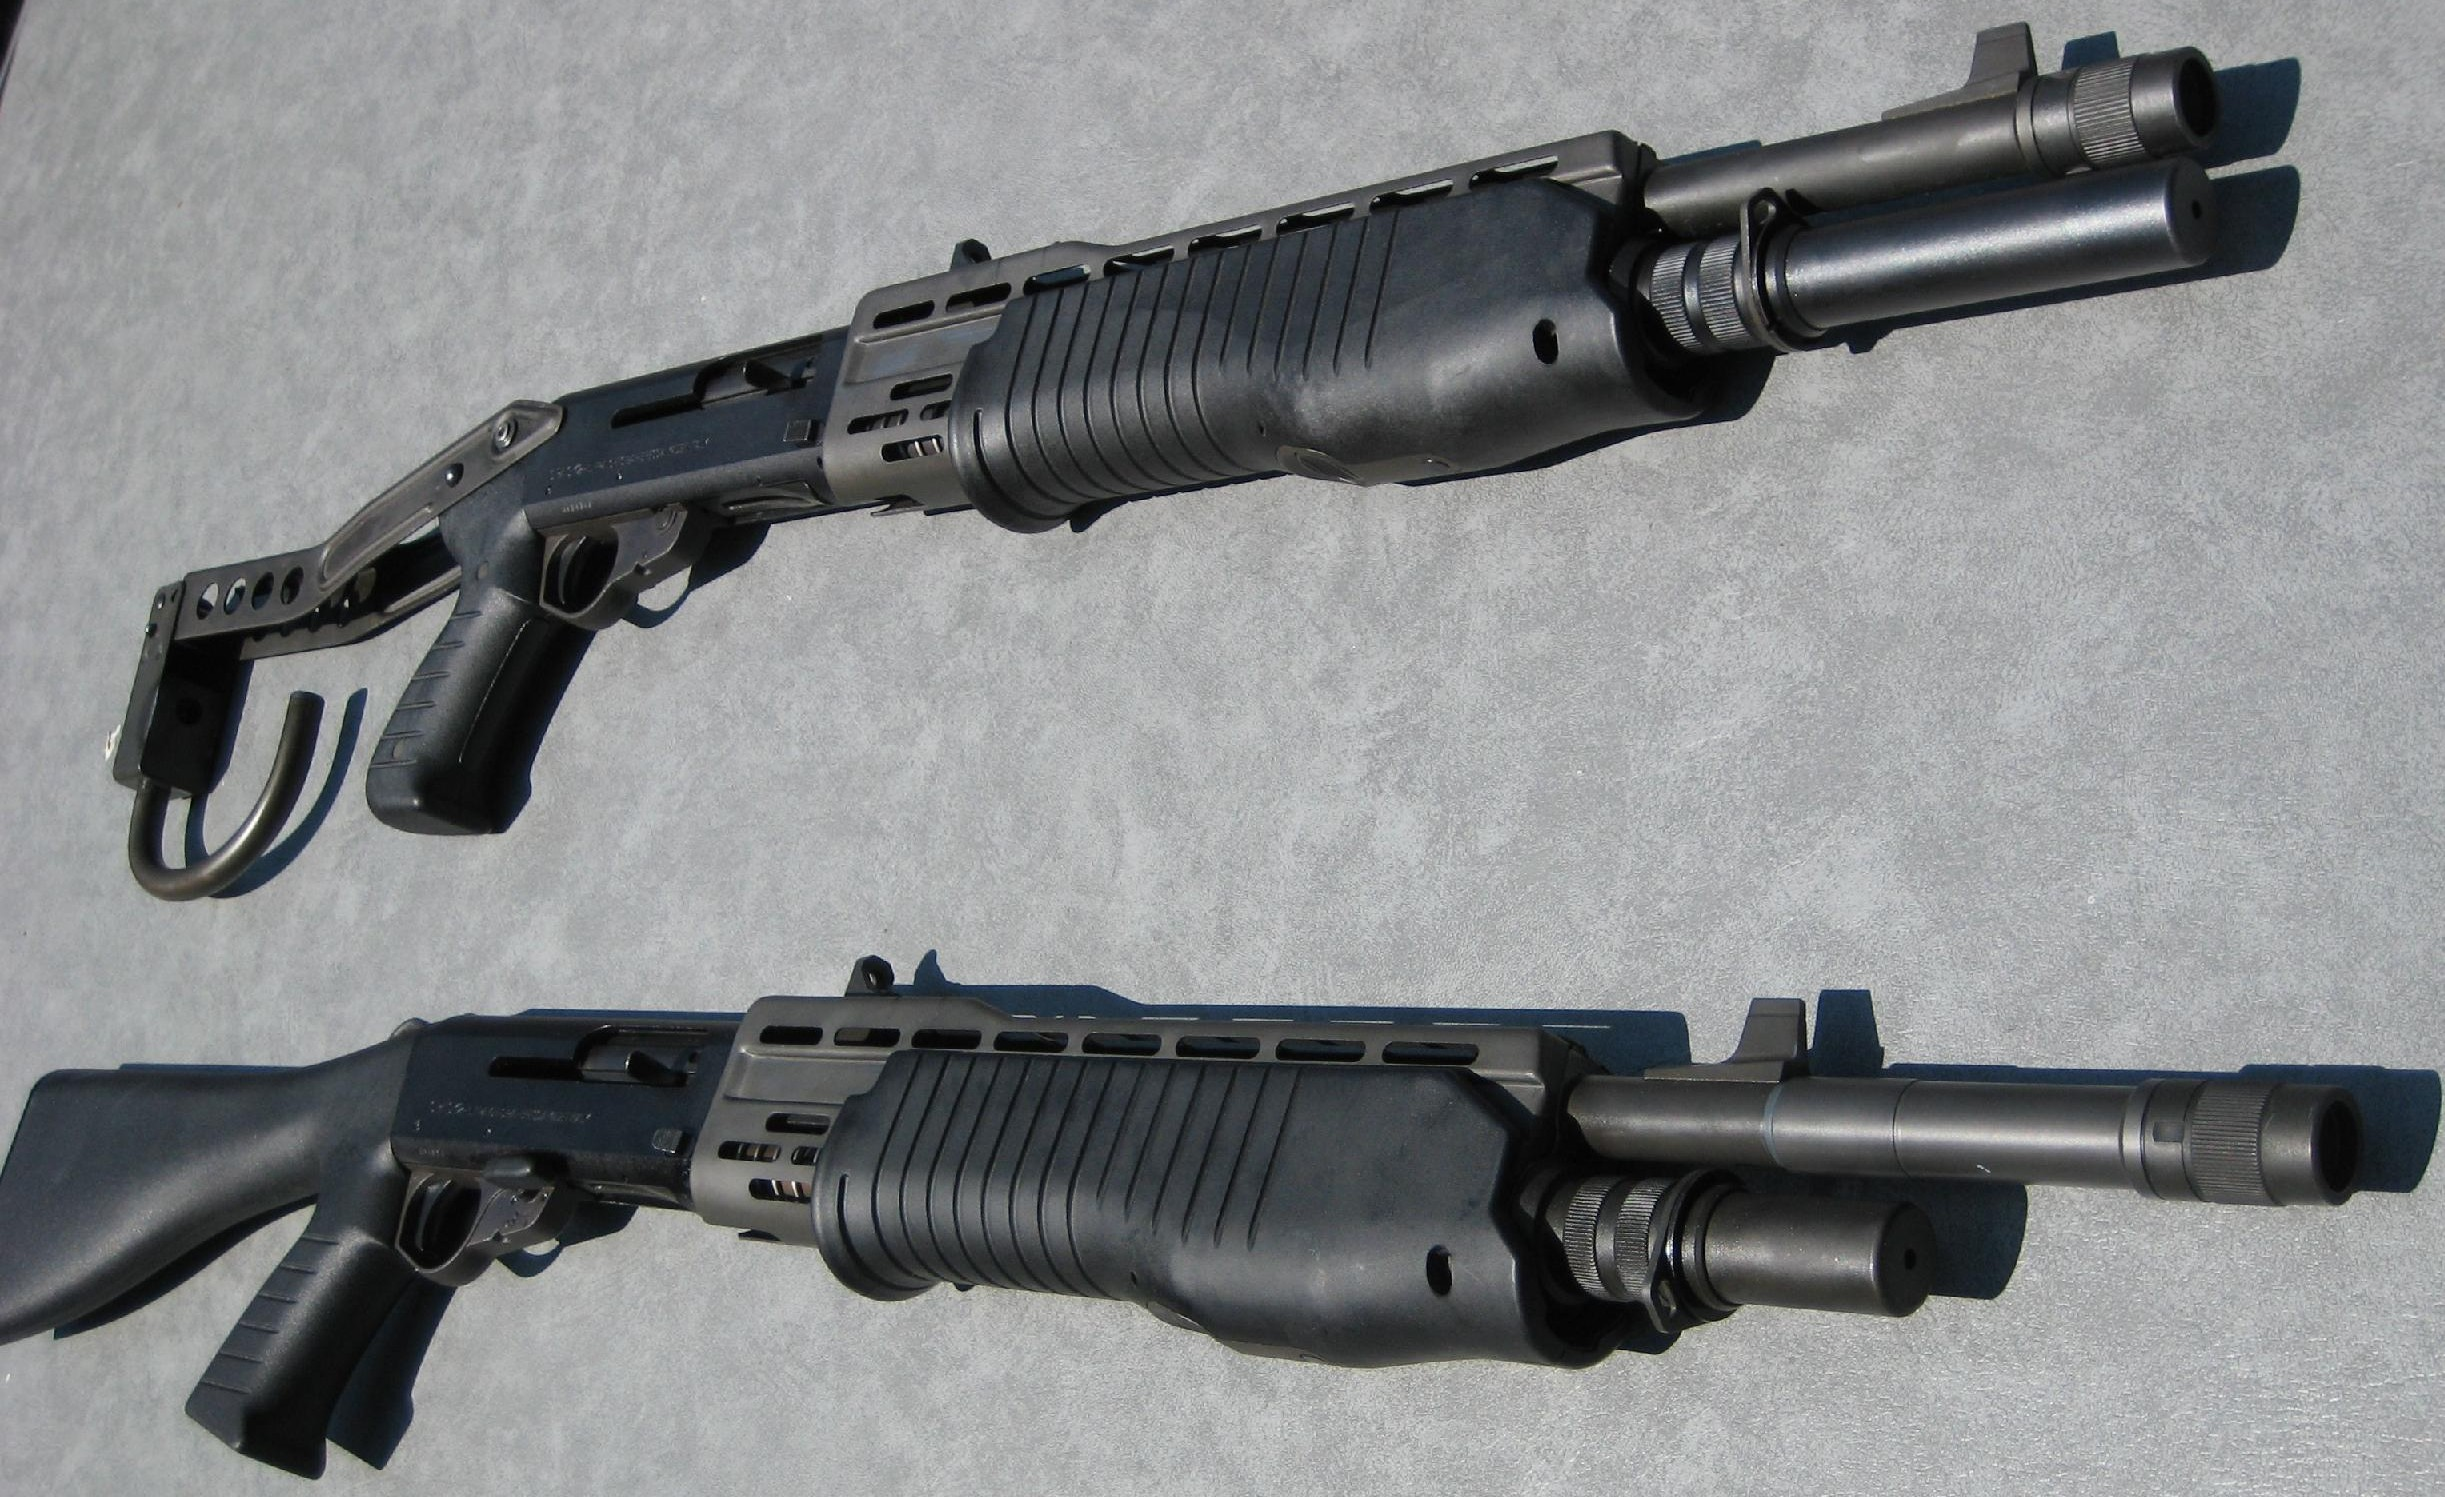 File:SPAS 12 Fixed Stock and Folding Stock.JPG - Wikipedia